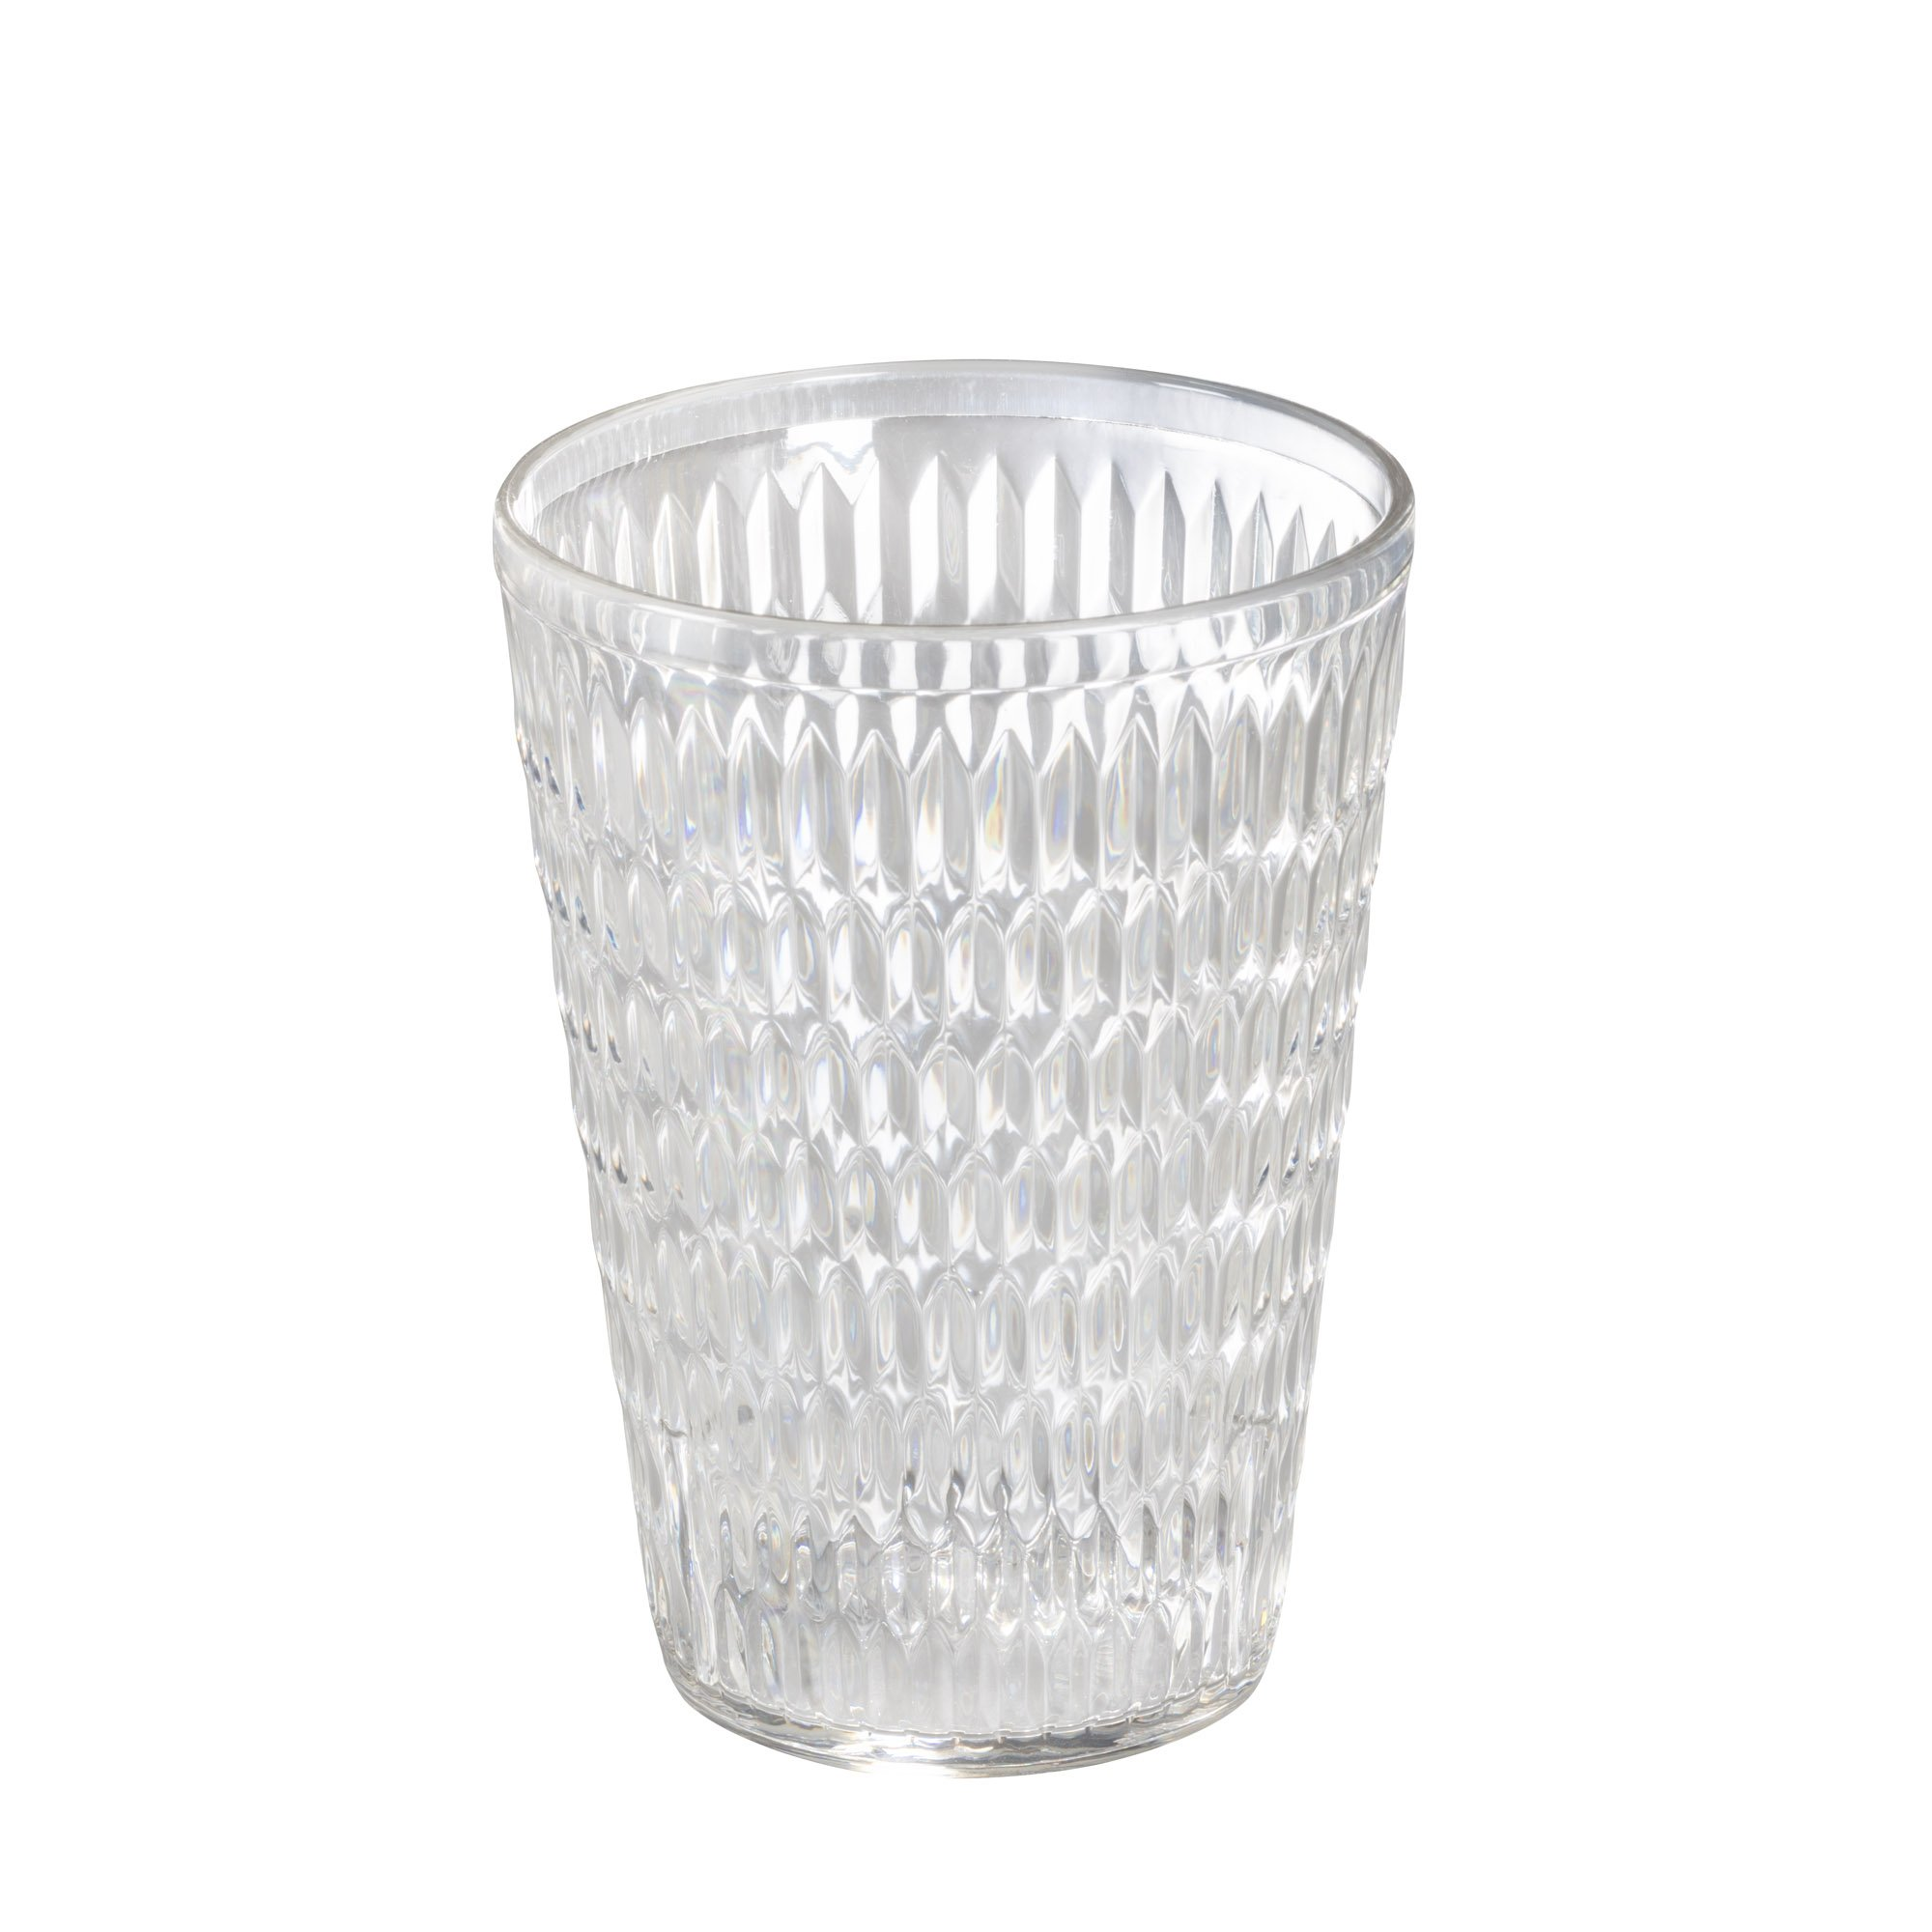 Atlantis Unbreakable Restaurant Quality Plastic Beverage Tumblers 22 oz (Set of 6)